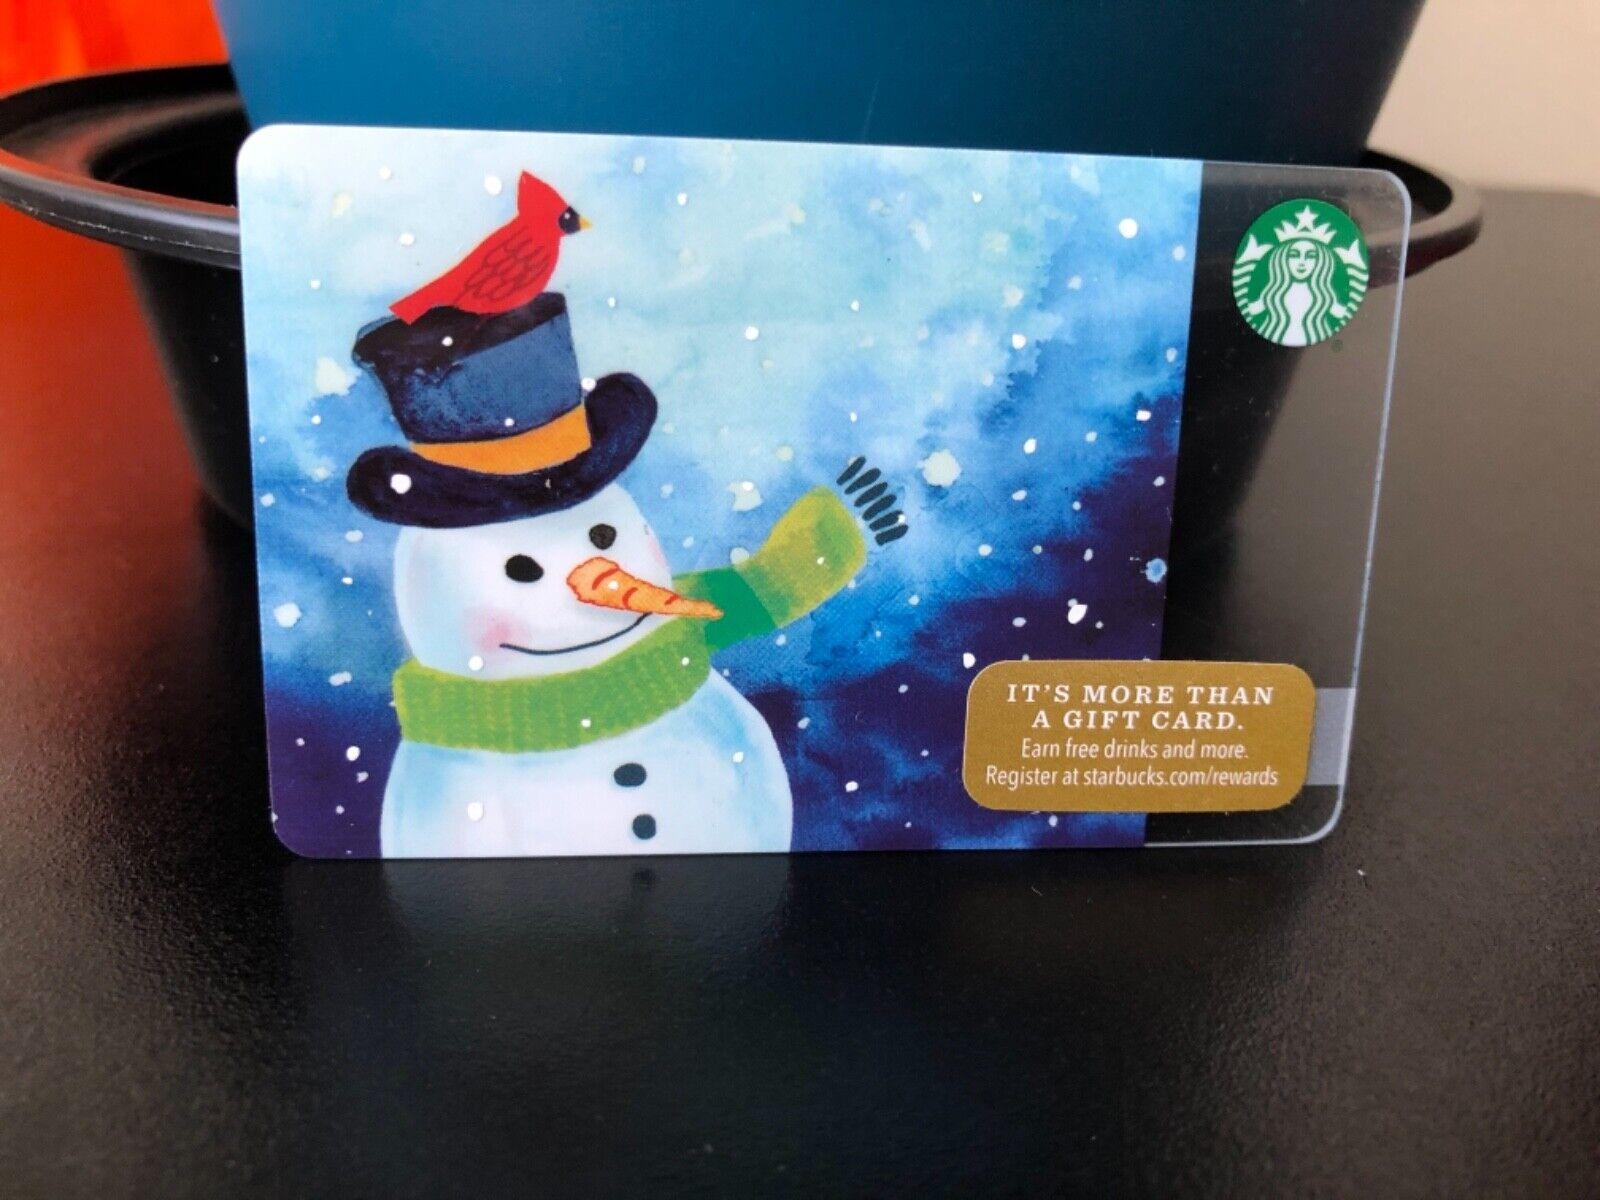 New Reloadable Frosty The Snowman Starbucks Gift Card Empty  - $3.25